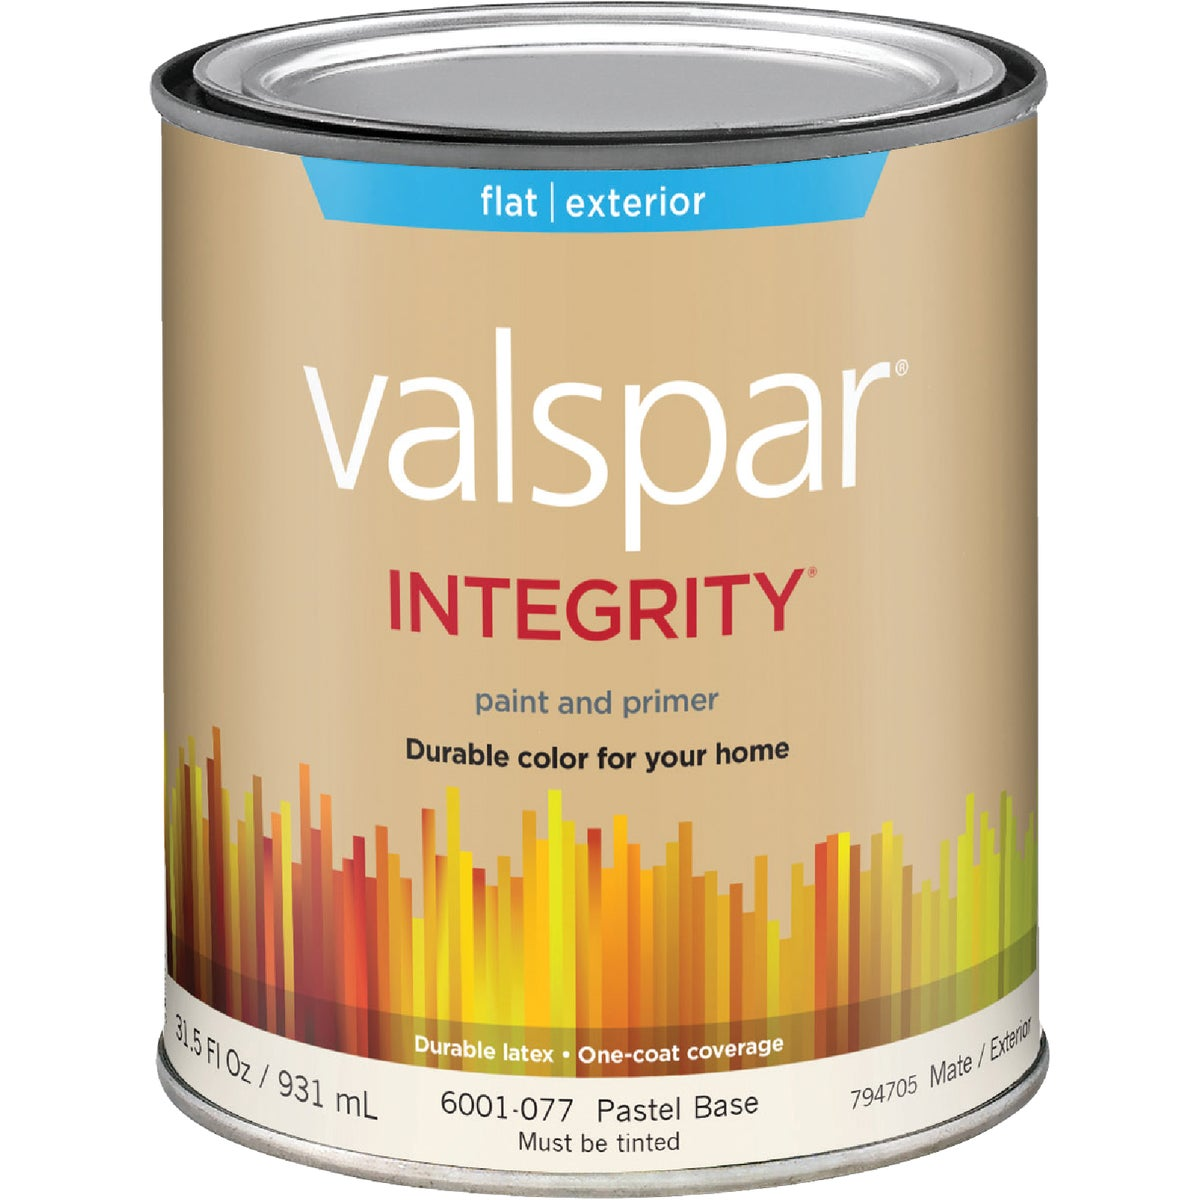 EXT FLAT PASTEL BS PAINT - 004.6001077.005 by Valspar Corp